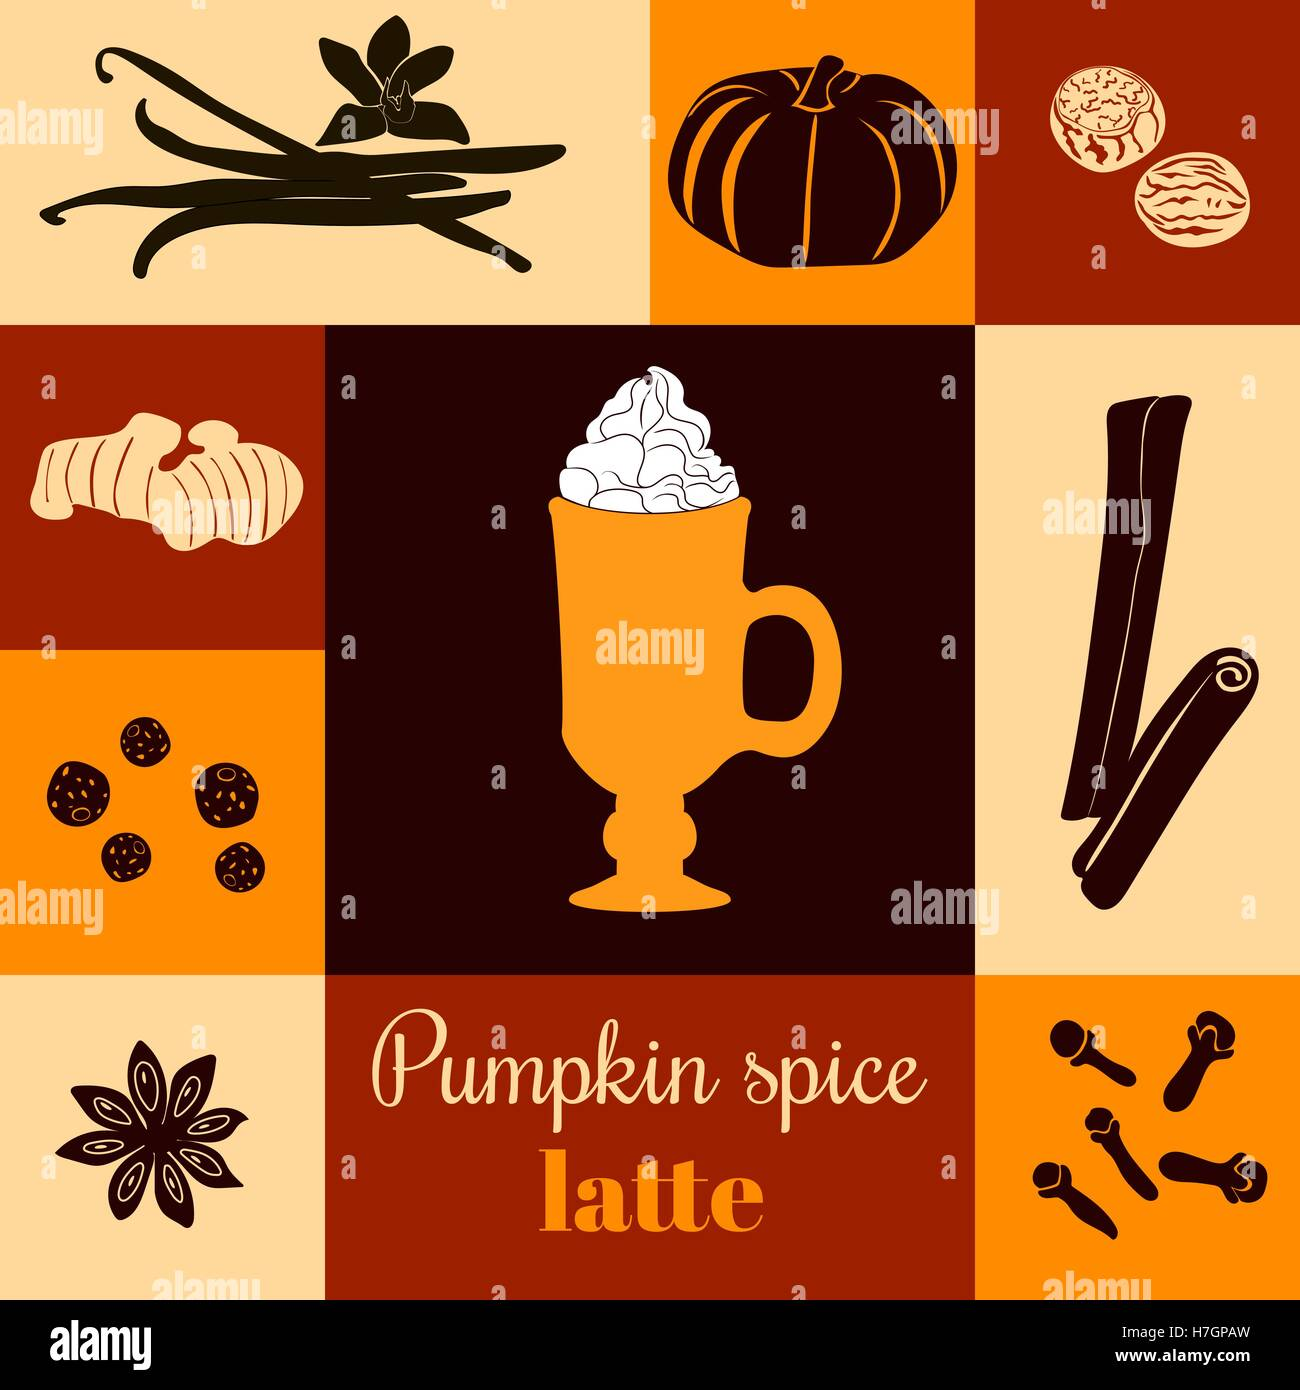 Pumpkin spice latte. Vector illustration with pumpkins, nutmeg, ginger, cloves, cinnamon, allspice, star anise, - Stock Vector